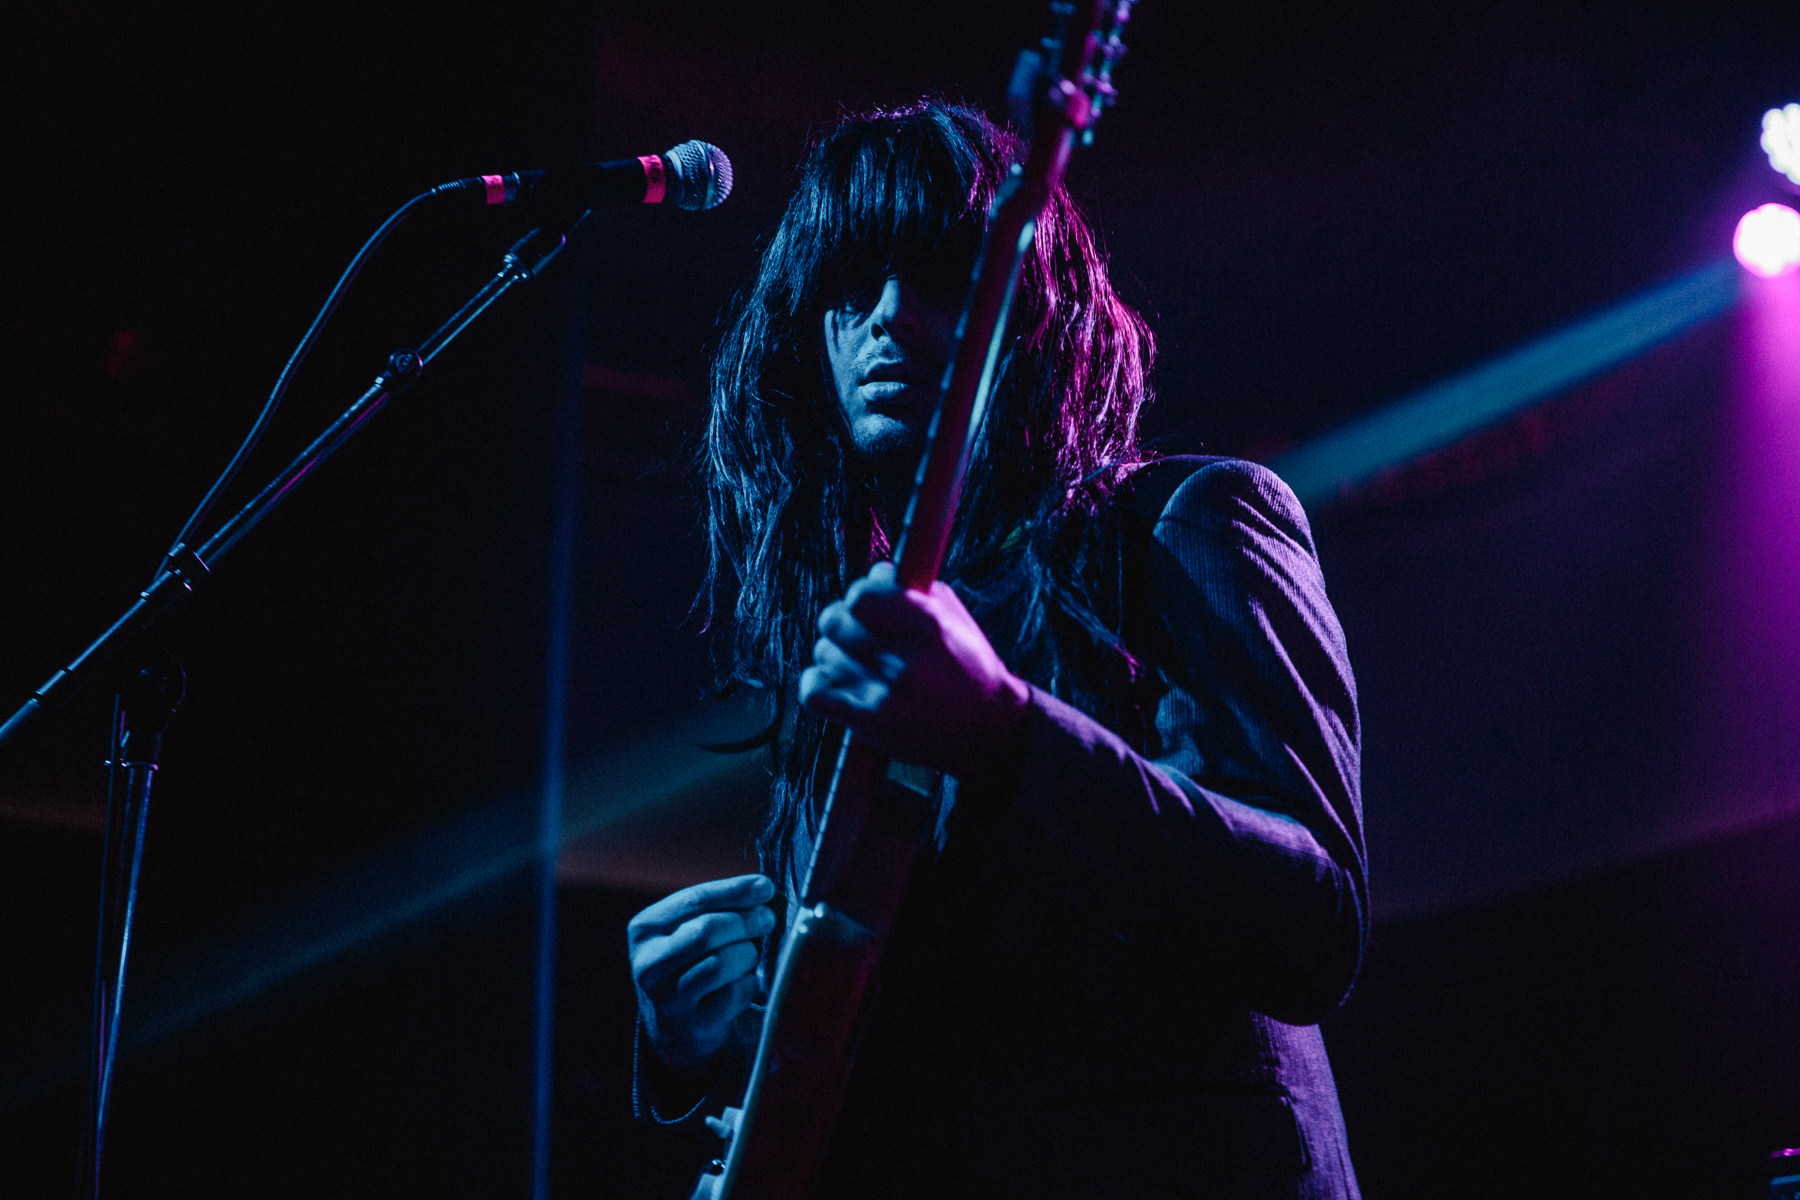 180326-kirby-gladstein-photograpy-khruangbin-concert-lodge-room-los-angeles-2272.jpg